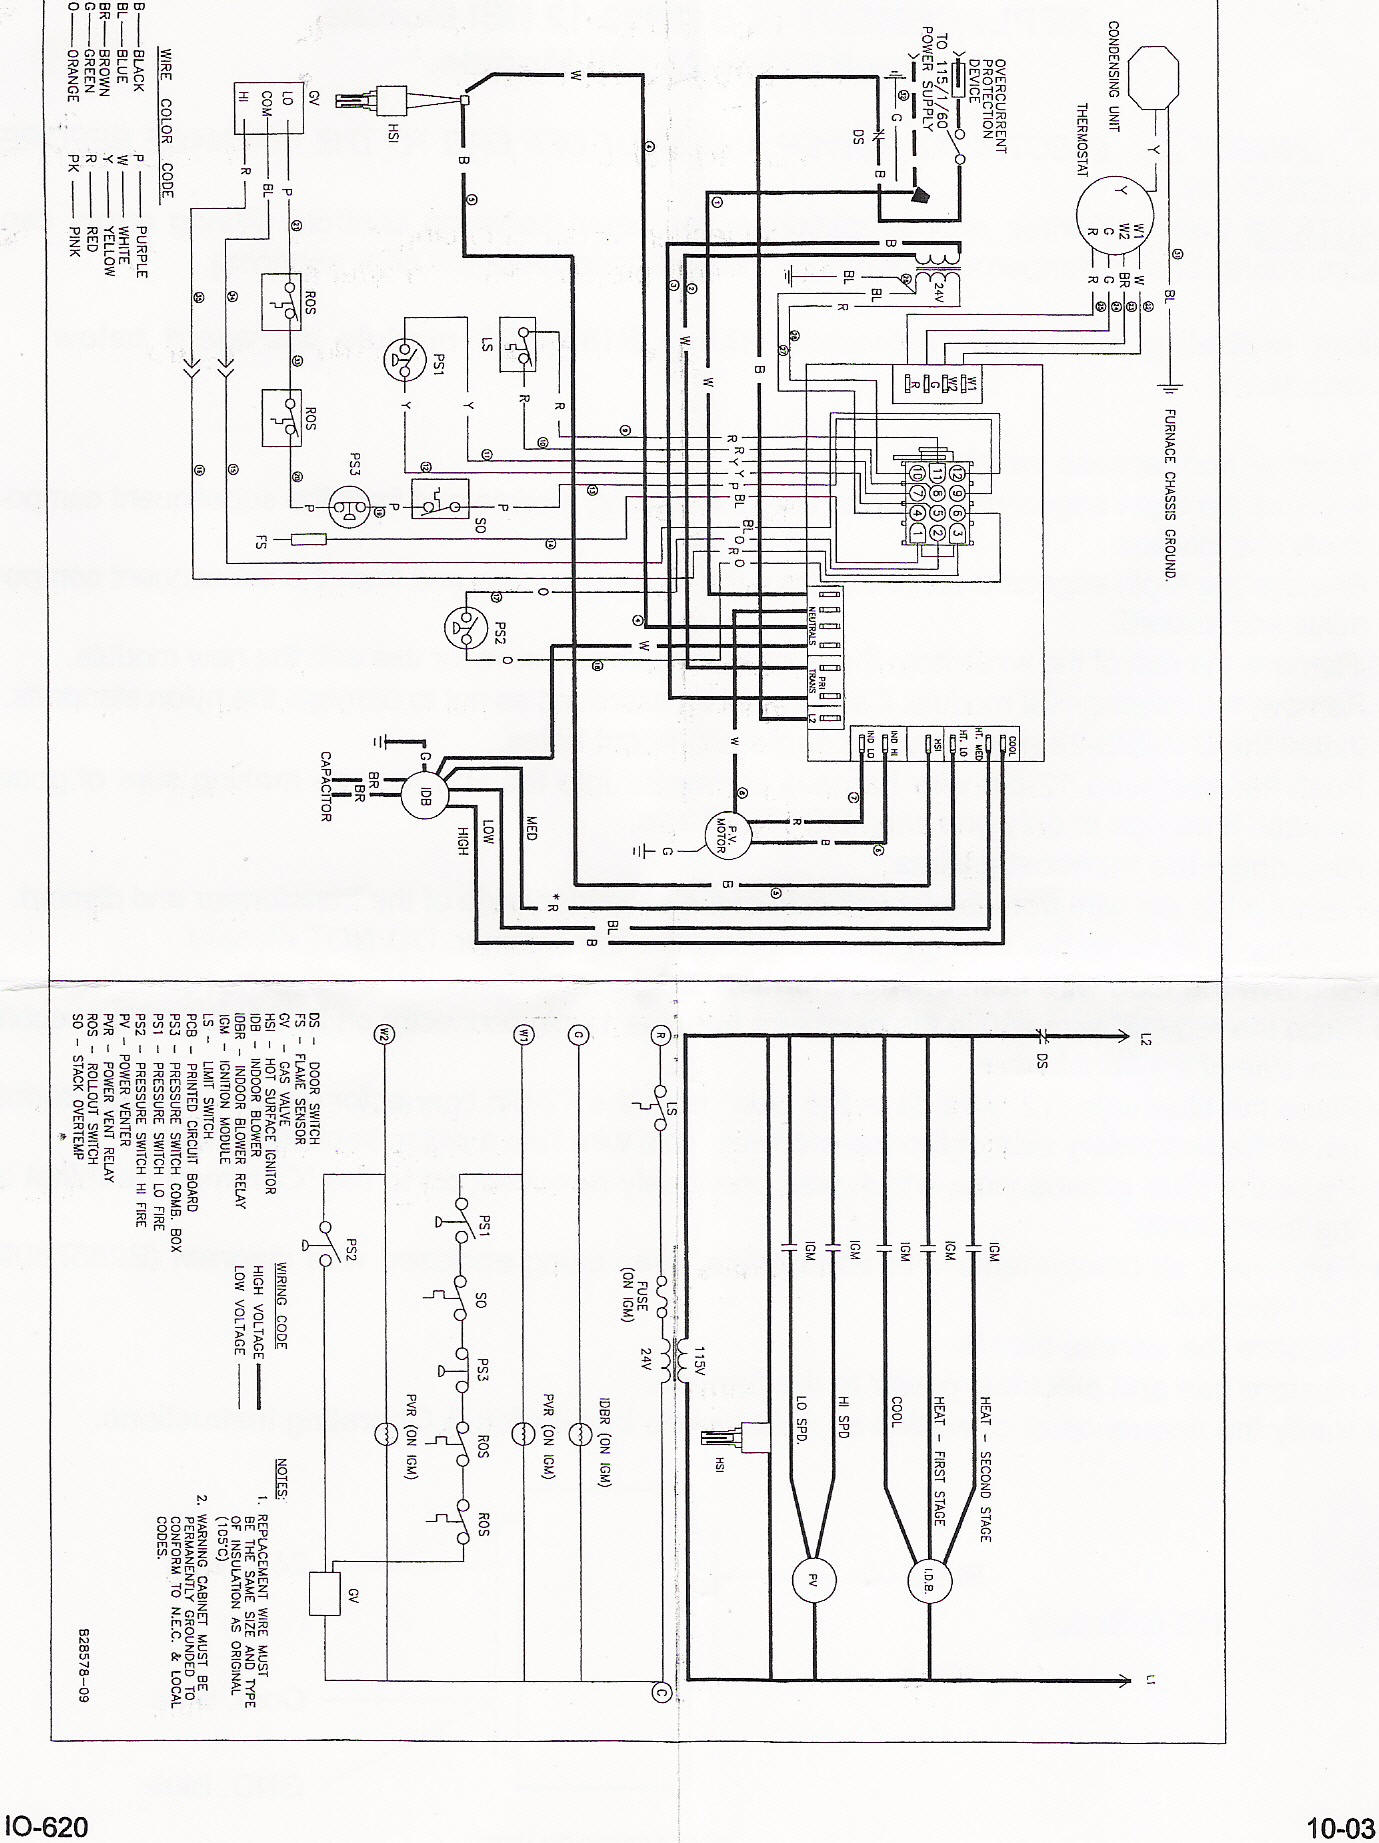 goodma2 instr goodman control board b18099 23 instructions Basic Electrical Wiring Diagrams at bayanpartner.co